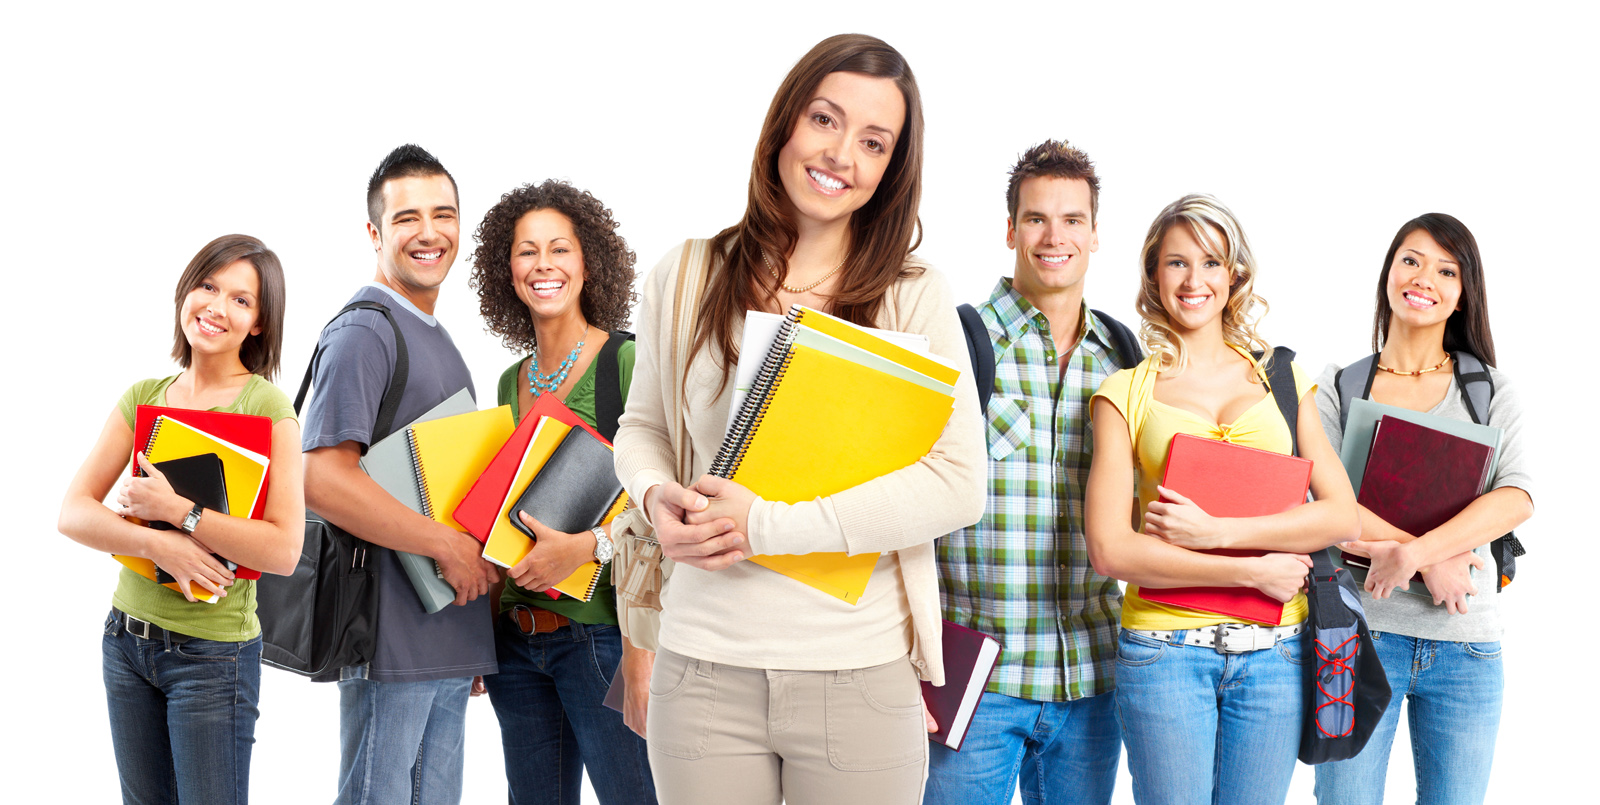 graphic design assignment help assignments help for the highest